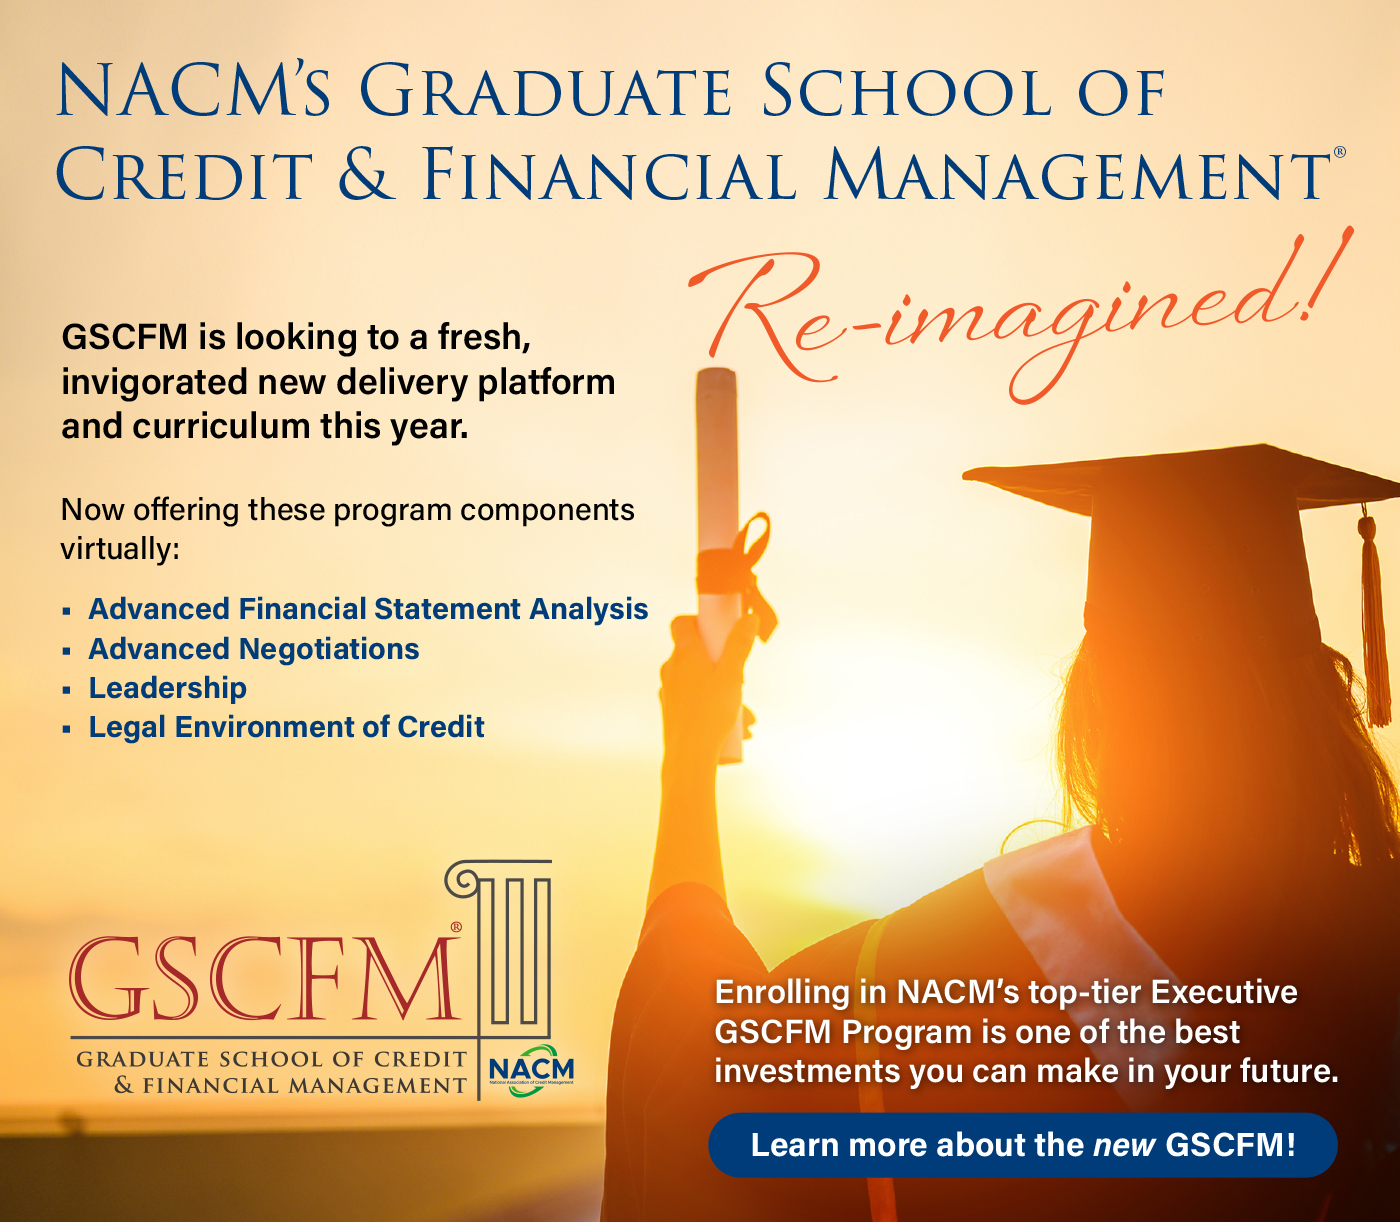 NACM's Graduate School of Credit & Financial Management - Re-imagined - Learn More Today!